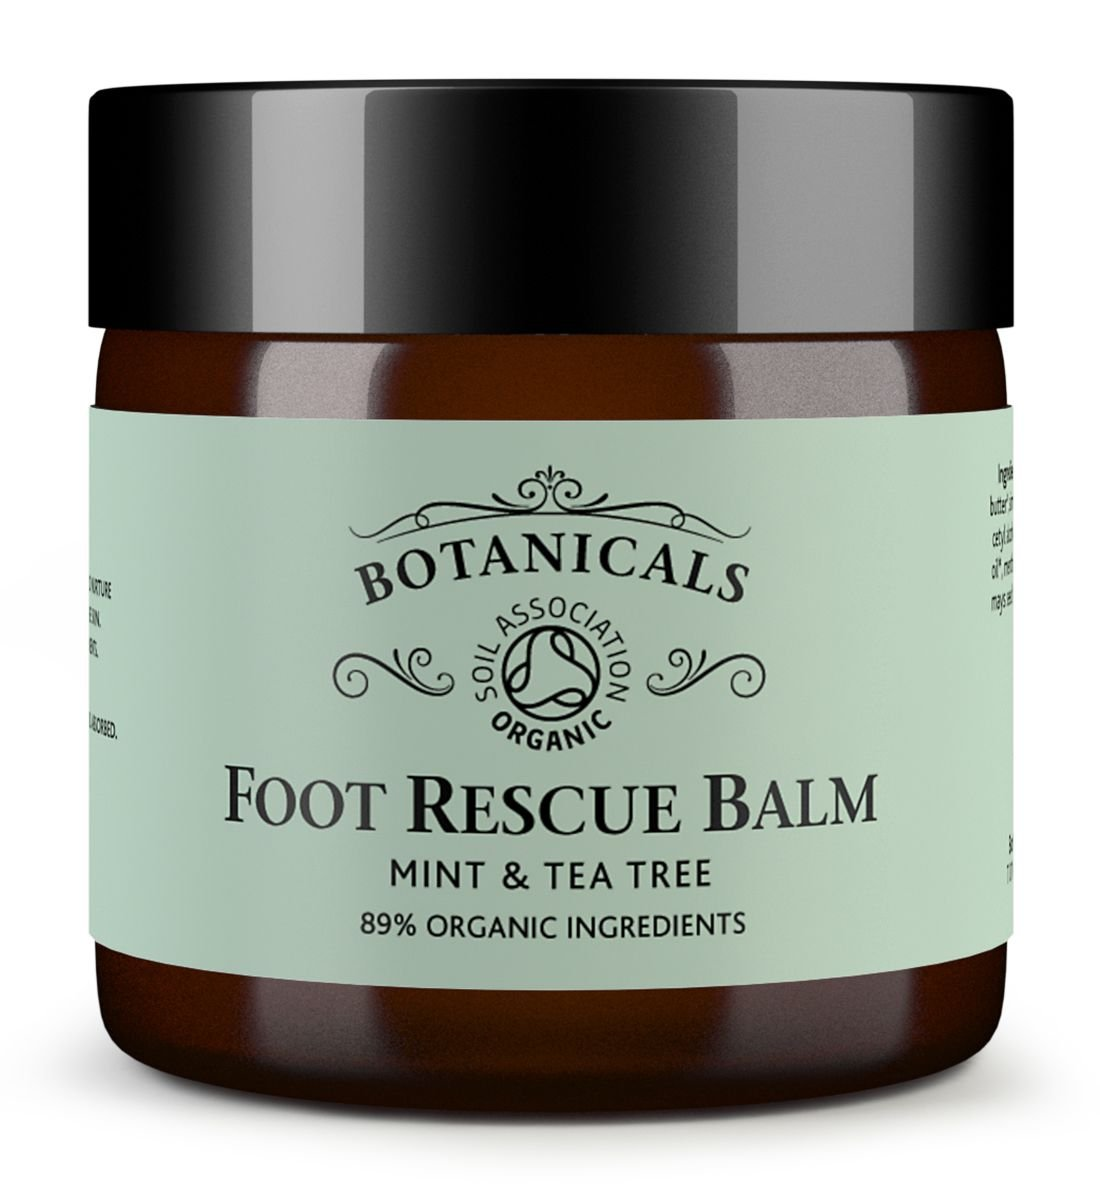 Foot Rescue Balm for Cracked Heels, Very Dry Skin & Athletes Foot Cream Treatment - 100% Natural and Certified Organic, Chemical Free Safe for Diabetics, Mint & Tea Tree (30g) Botanicals